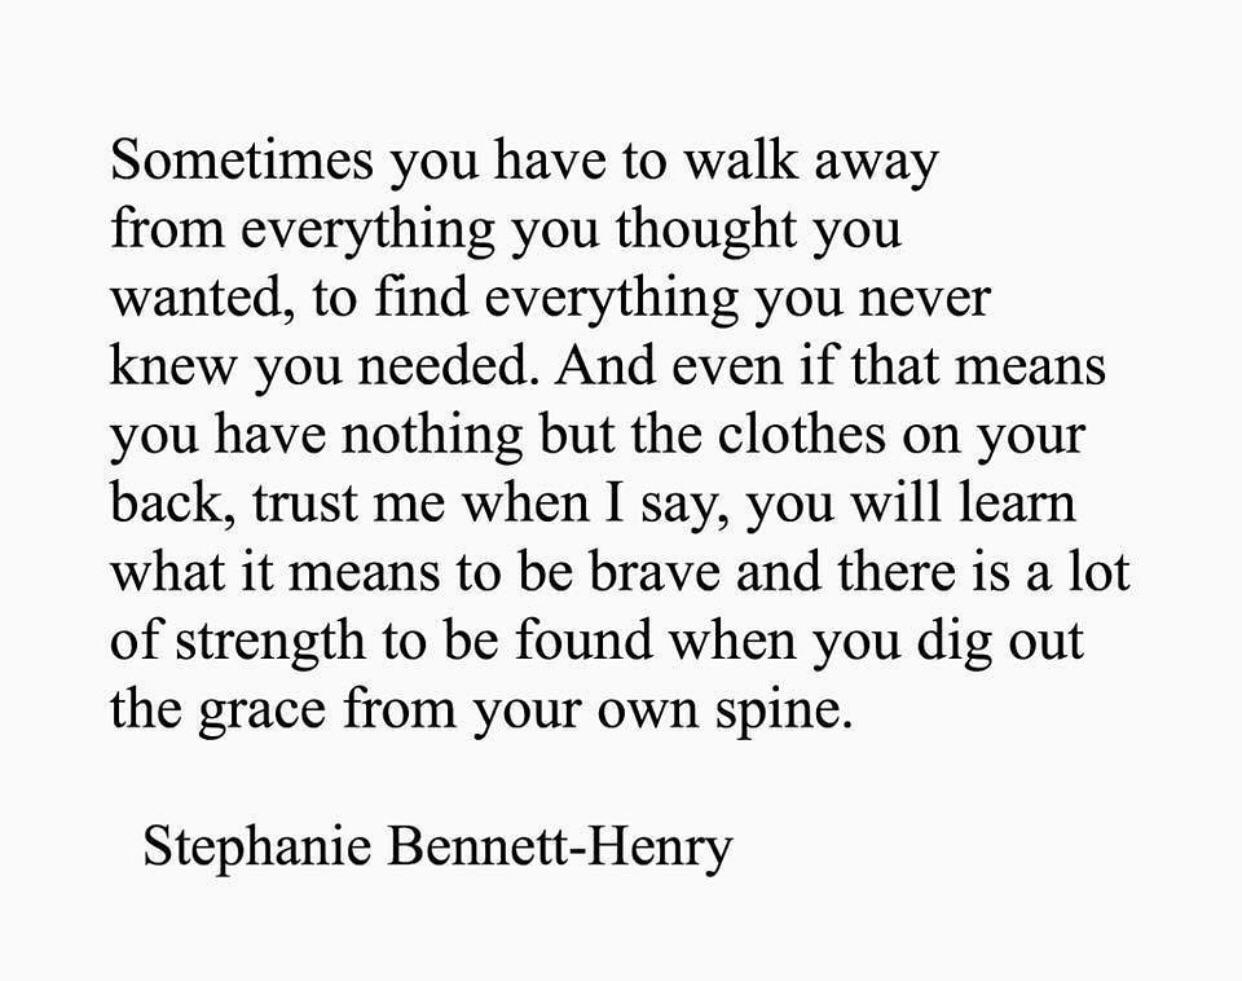 Sometimes you have to walk away from everything you thought you wanted, to find everything you never knew you needed. And even if that means you have nothing but the clothes on your back, trust me when I say, you will learn what it means to be brave and there is a lot of strength to be found when you dig out the grace from your own spine. Stephanie Bennett-Henry https://inspirational.ly